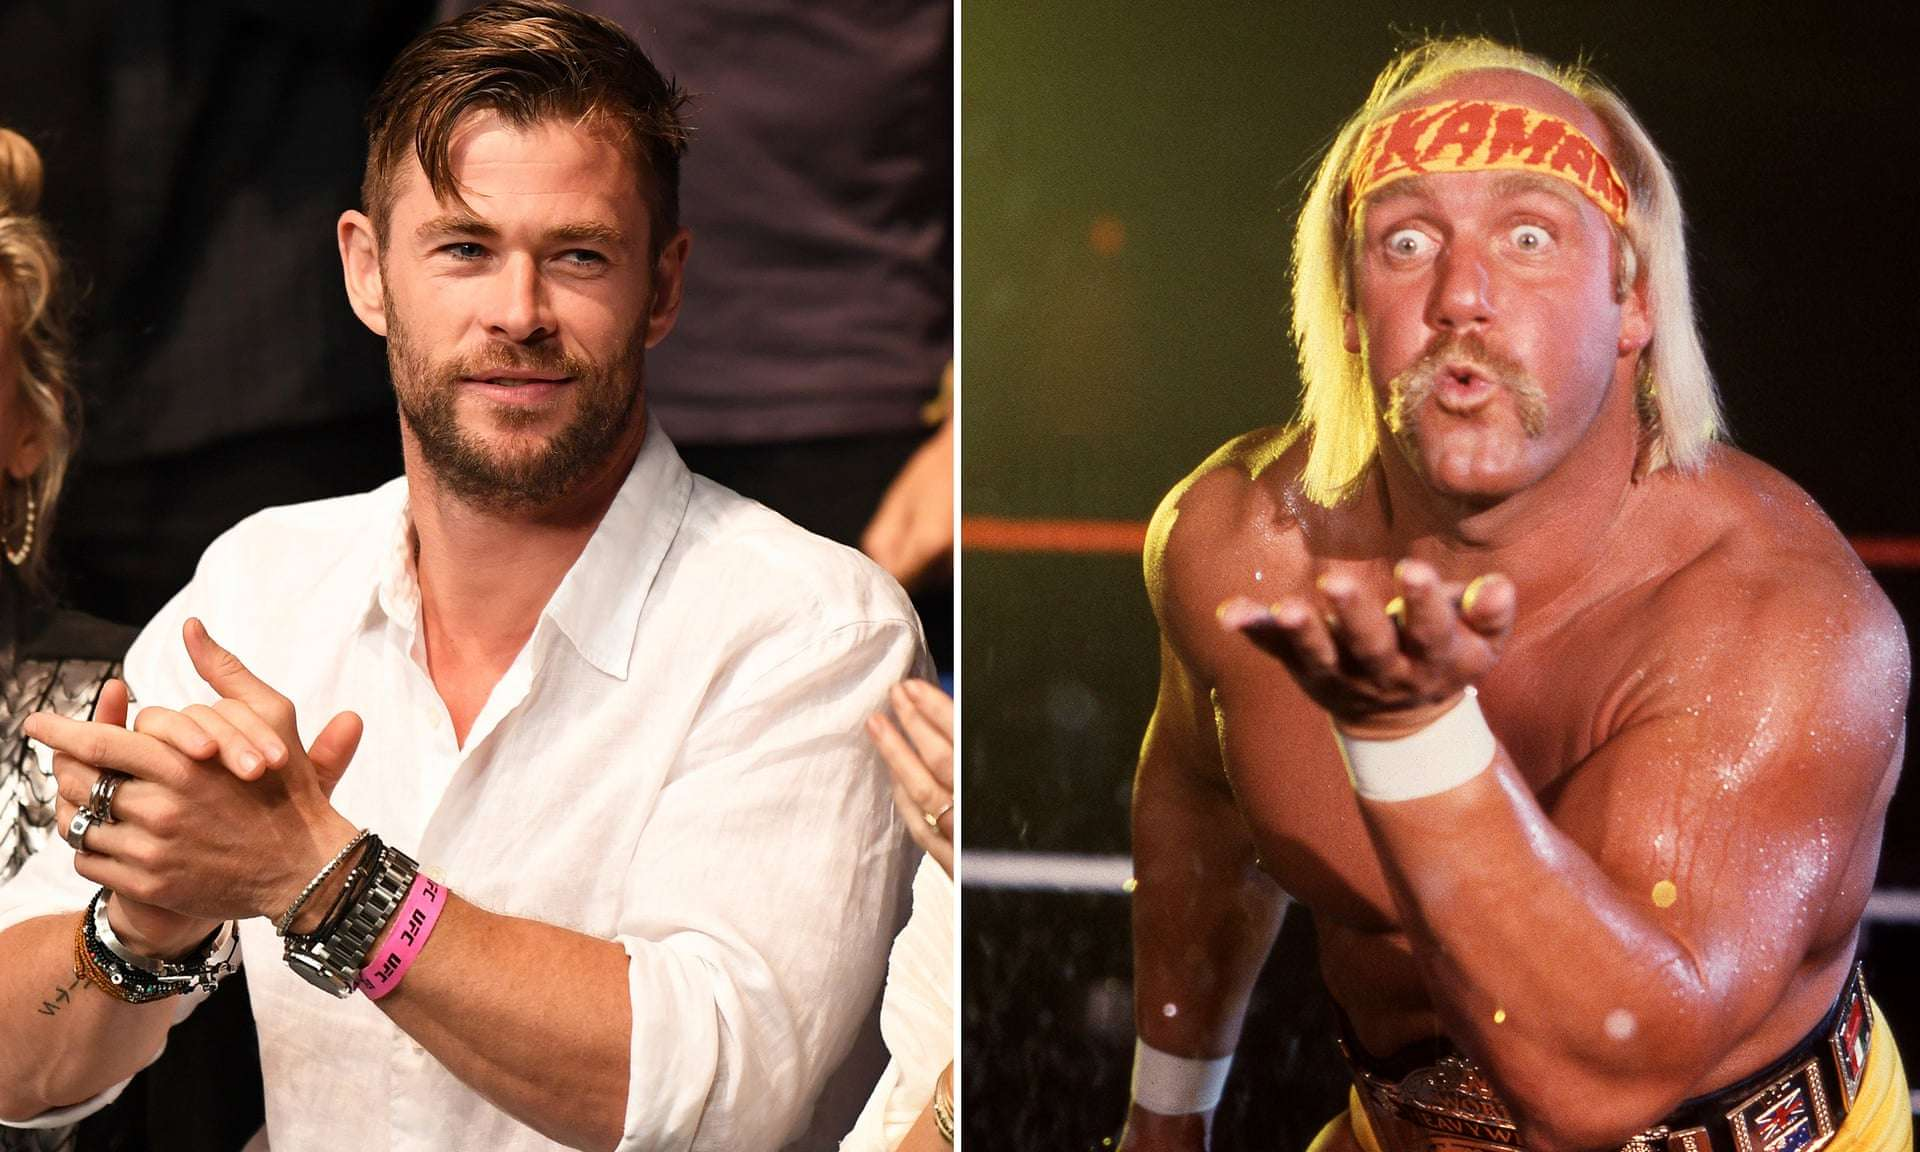 Chris Hemsworth diventa Hulk Hogan: